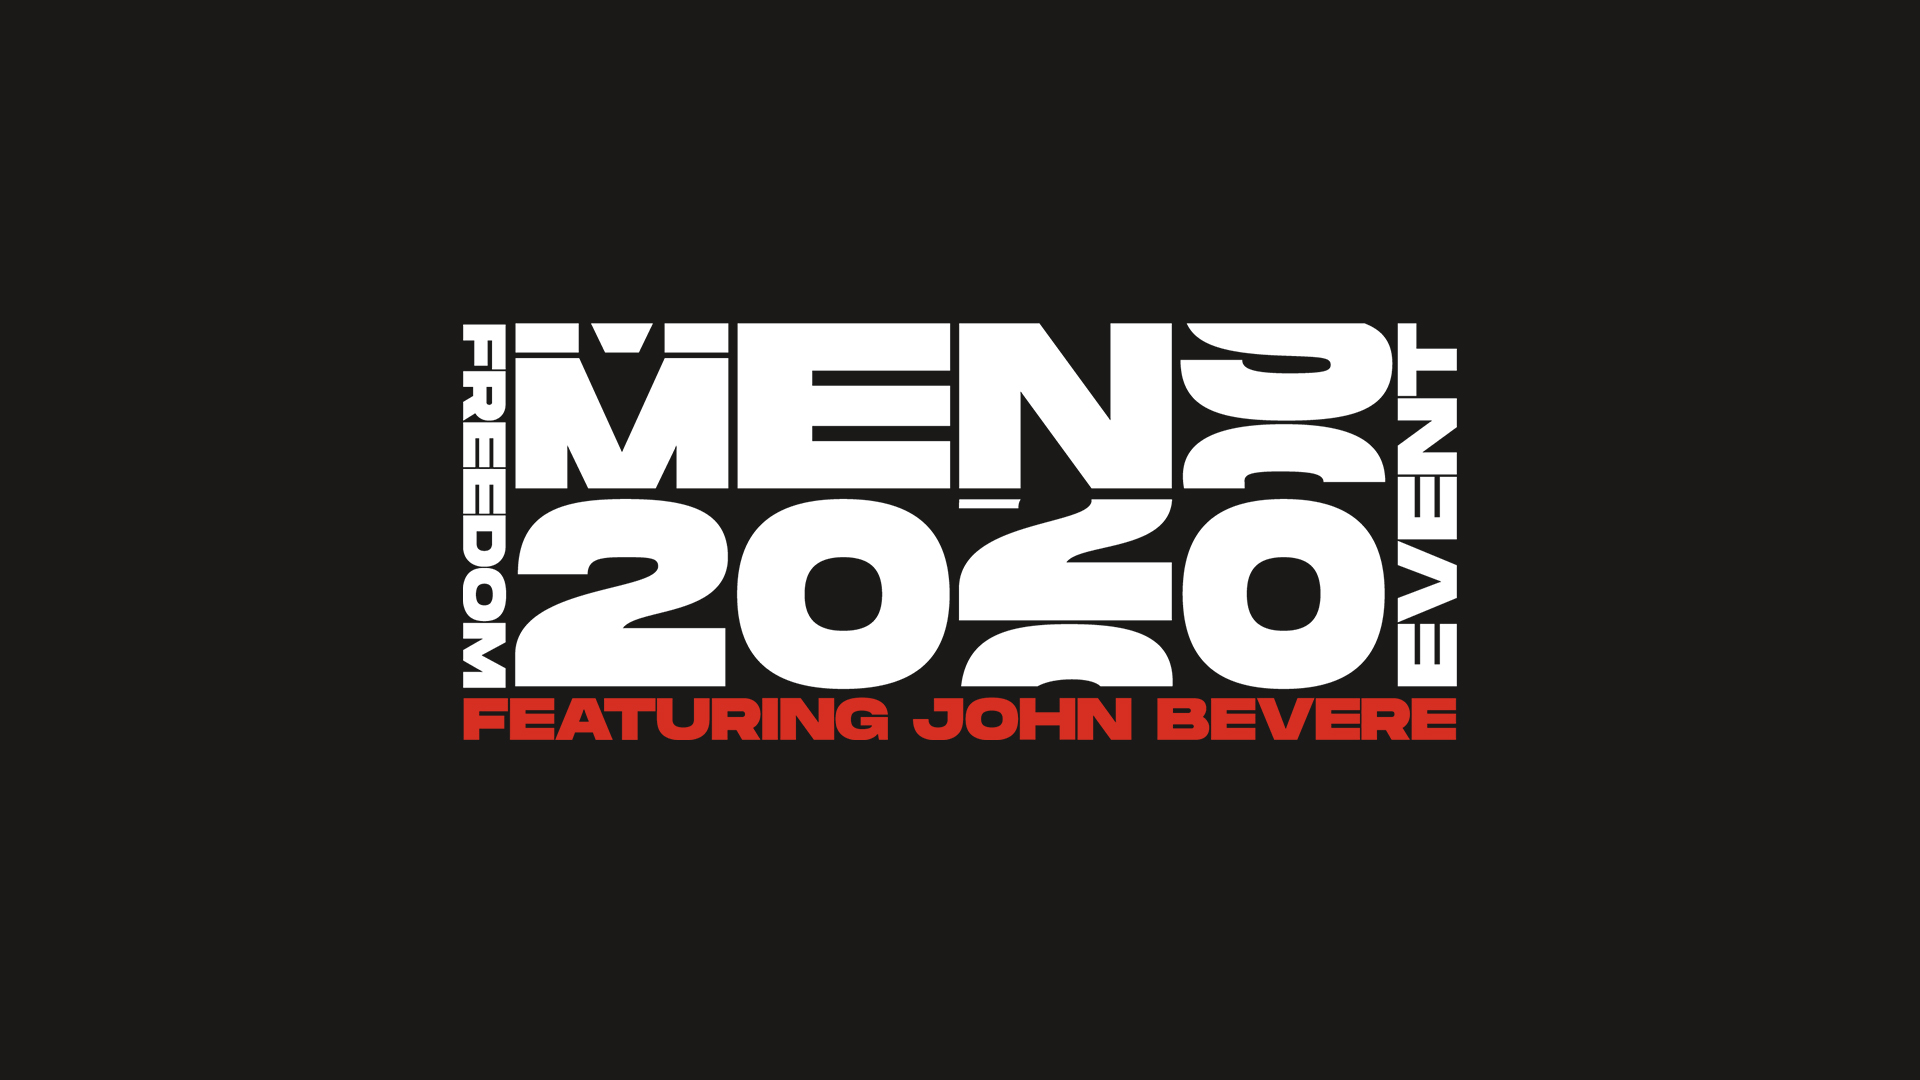 Men's event - 28th of March 2020